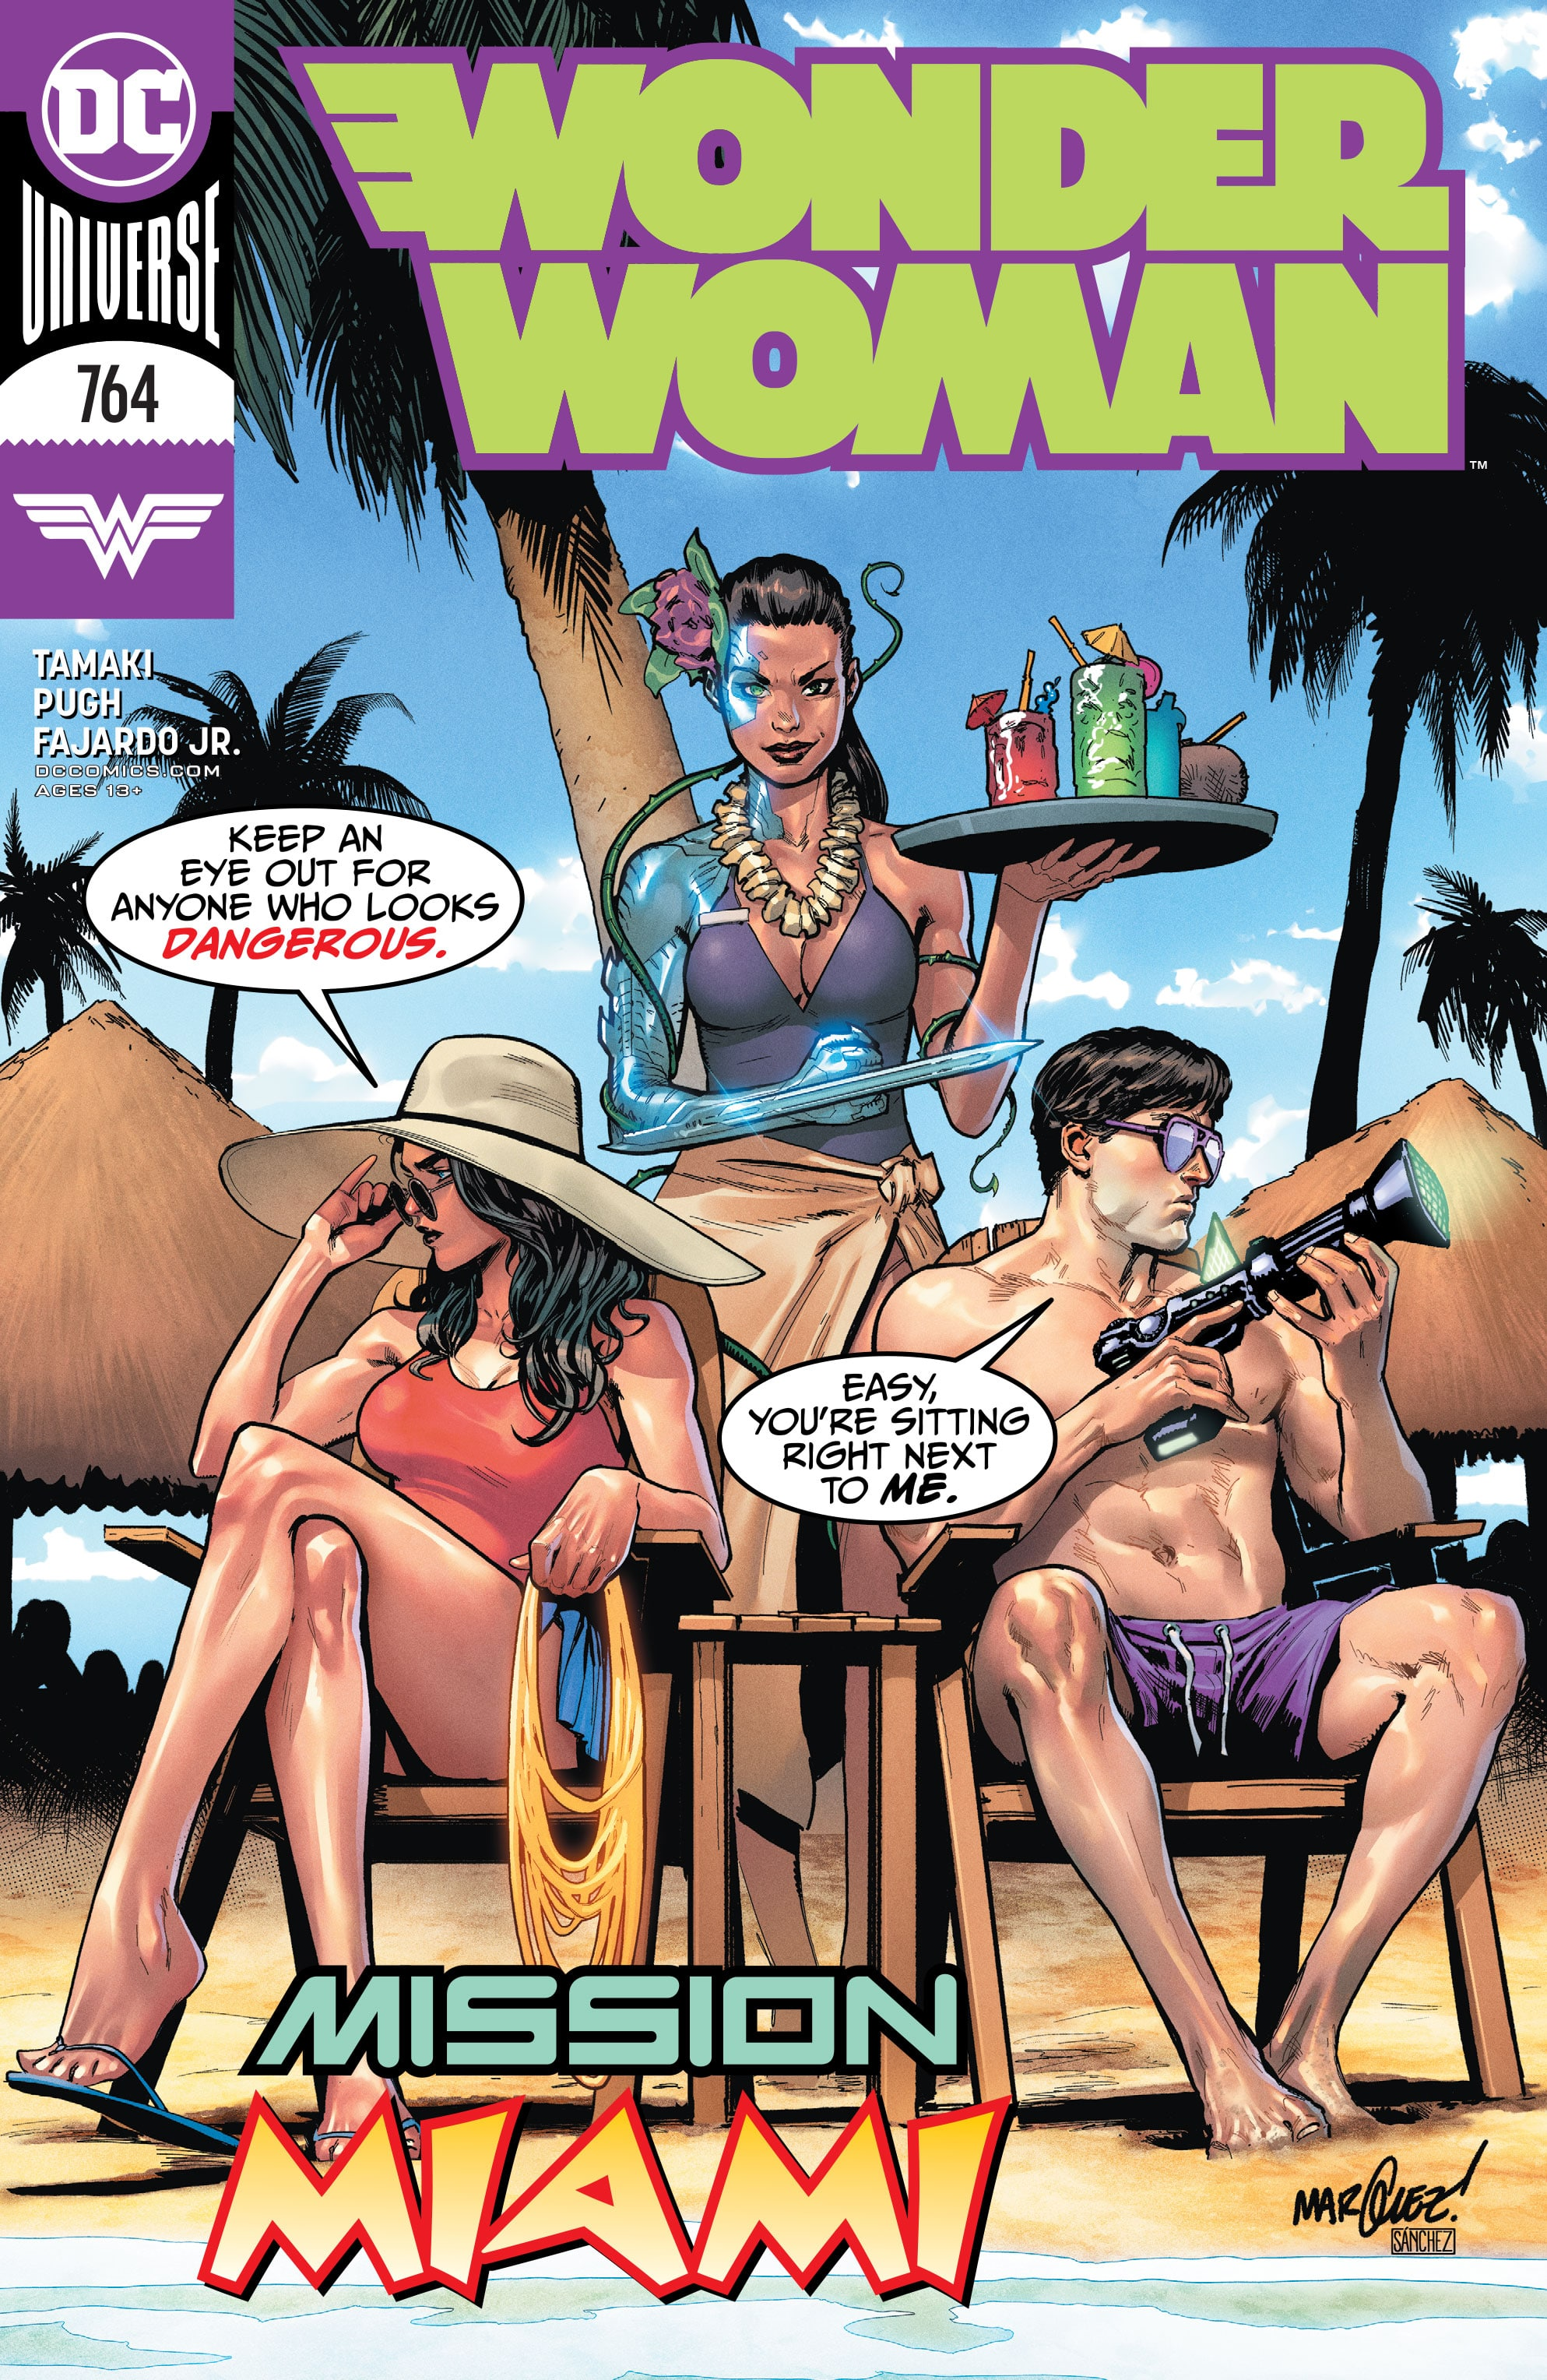 Wonder Woman 764 – Whose Title Are We Reading?